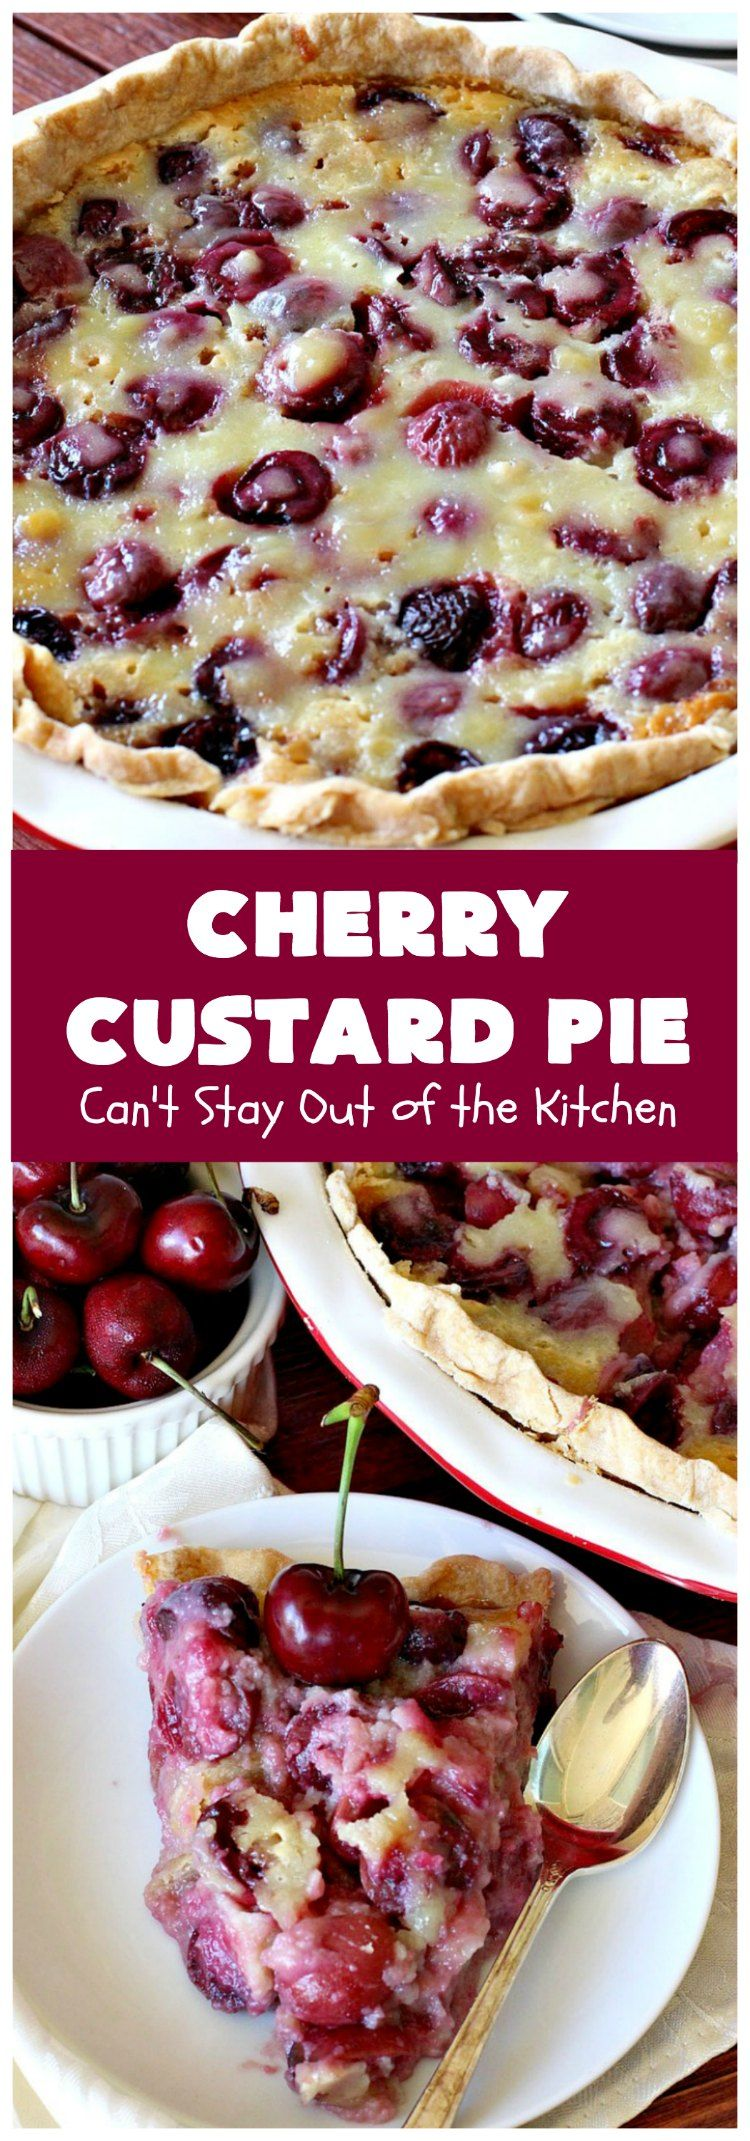 Cherry Custard Pie is part of Desserts - Enjoy this irresistible Cherry Custard Pie as an alternative to traditional Cherry Pie this summer  It's rich, decadent and utterly delicious  This mouthwatering dessert is marvelous to make in the summer when fresh cherries are in season  It will rock your world!